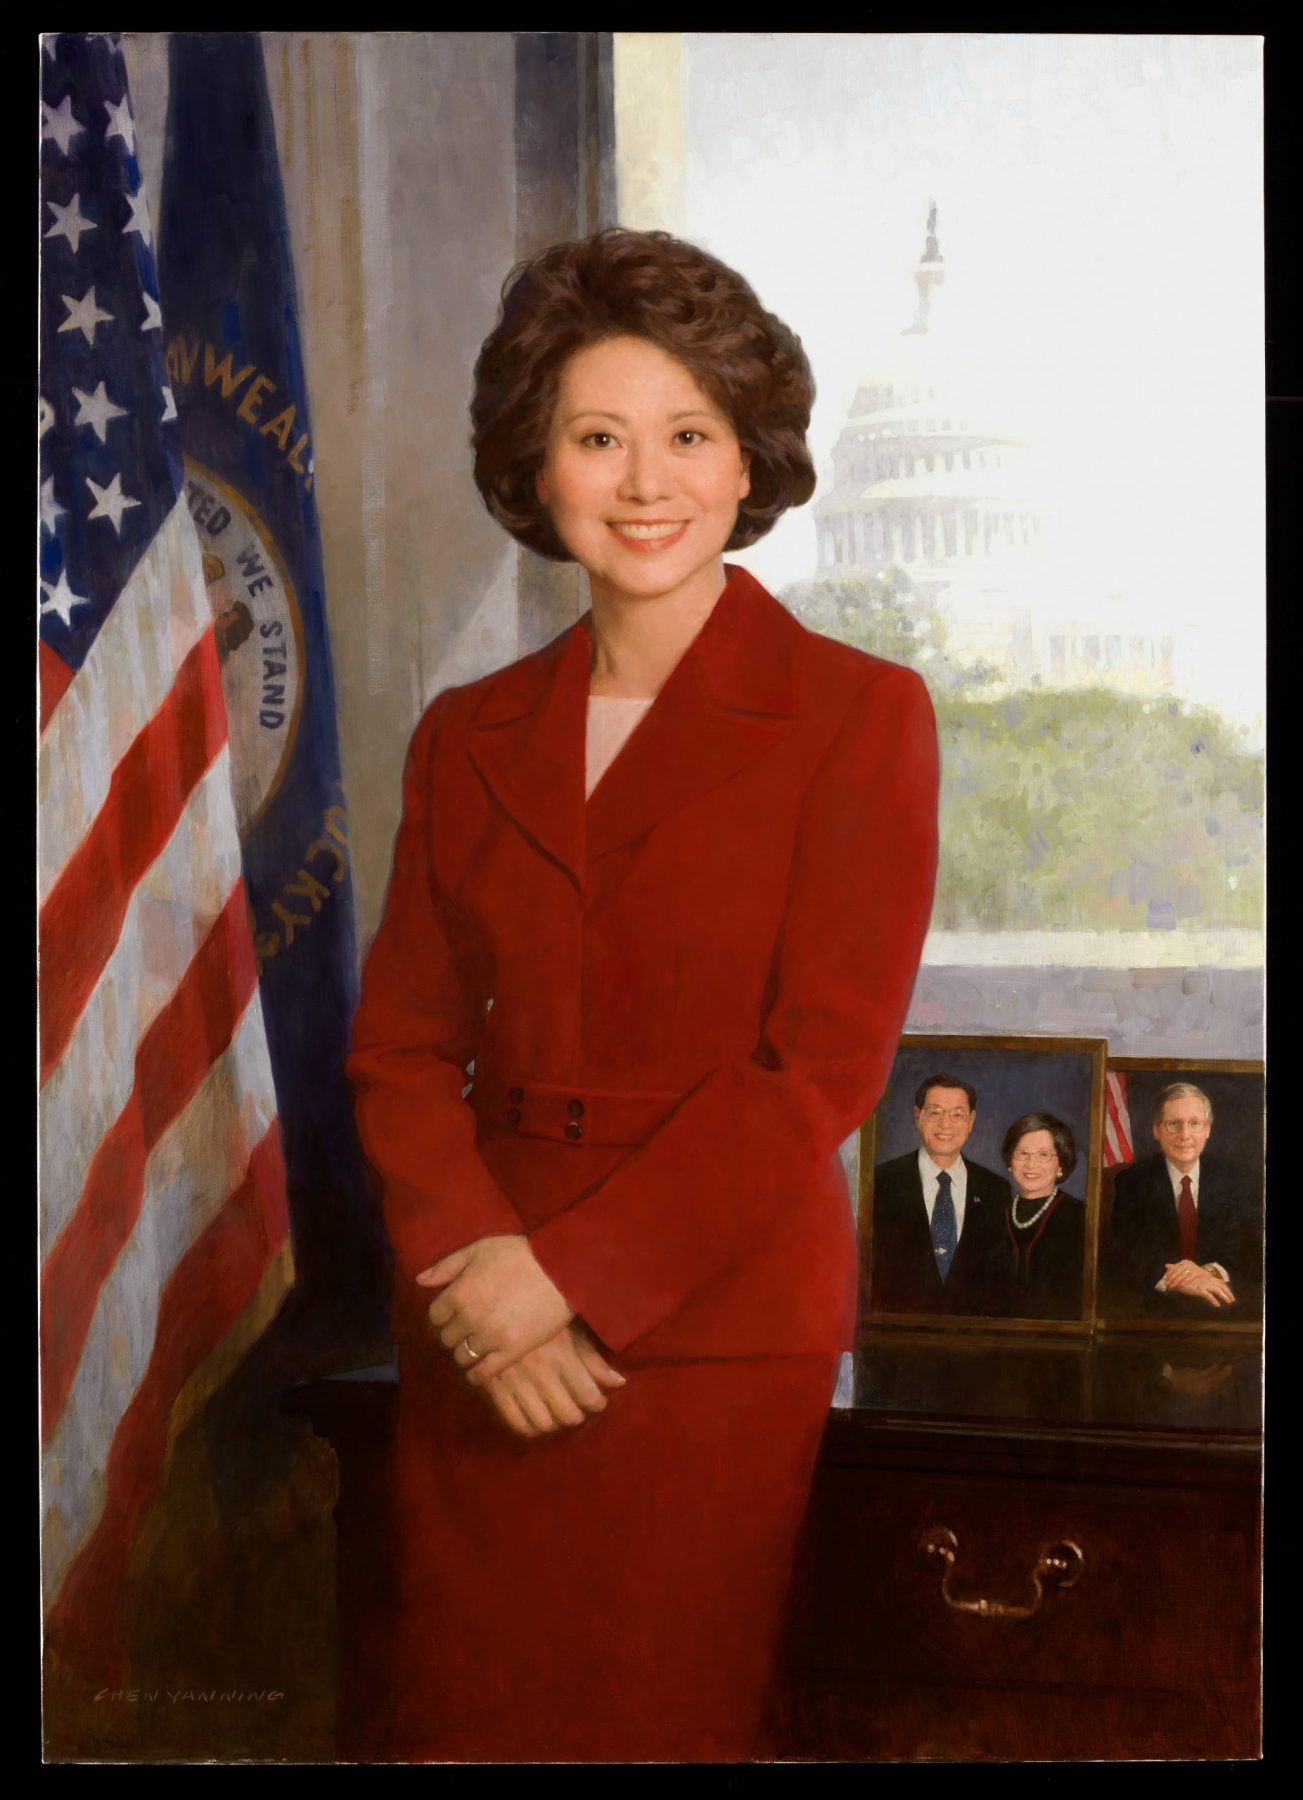 https://www.elainechao.com/wp-content/uploads/2020/11/Portraits-INC-126949--scaled.jpg